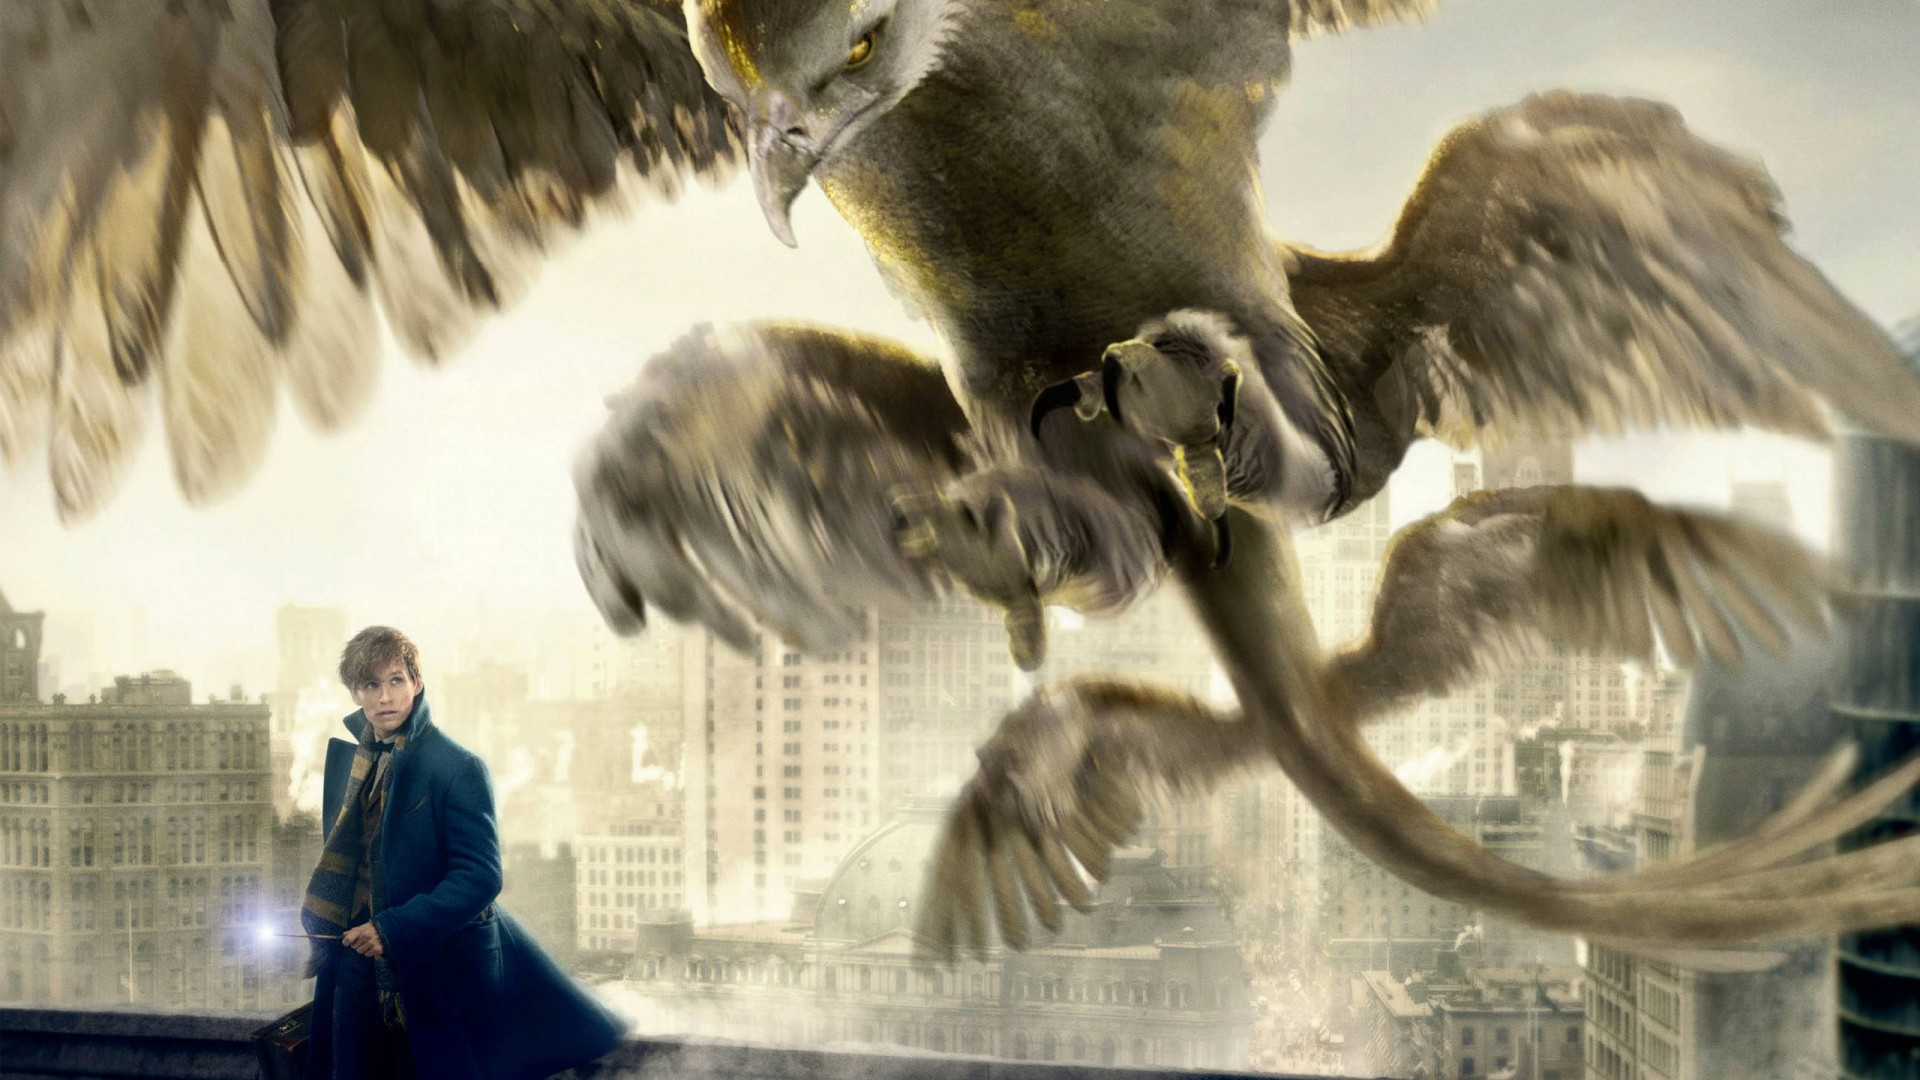 Fantastic Beasts and Where to Find Them wallpaper 2 1920x1080